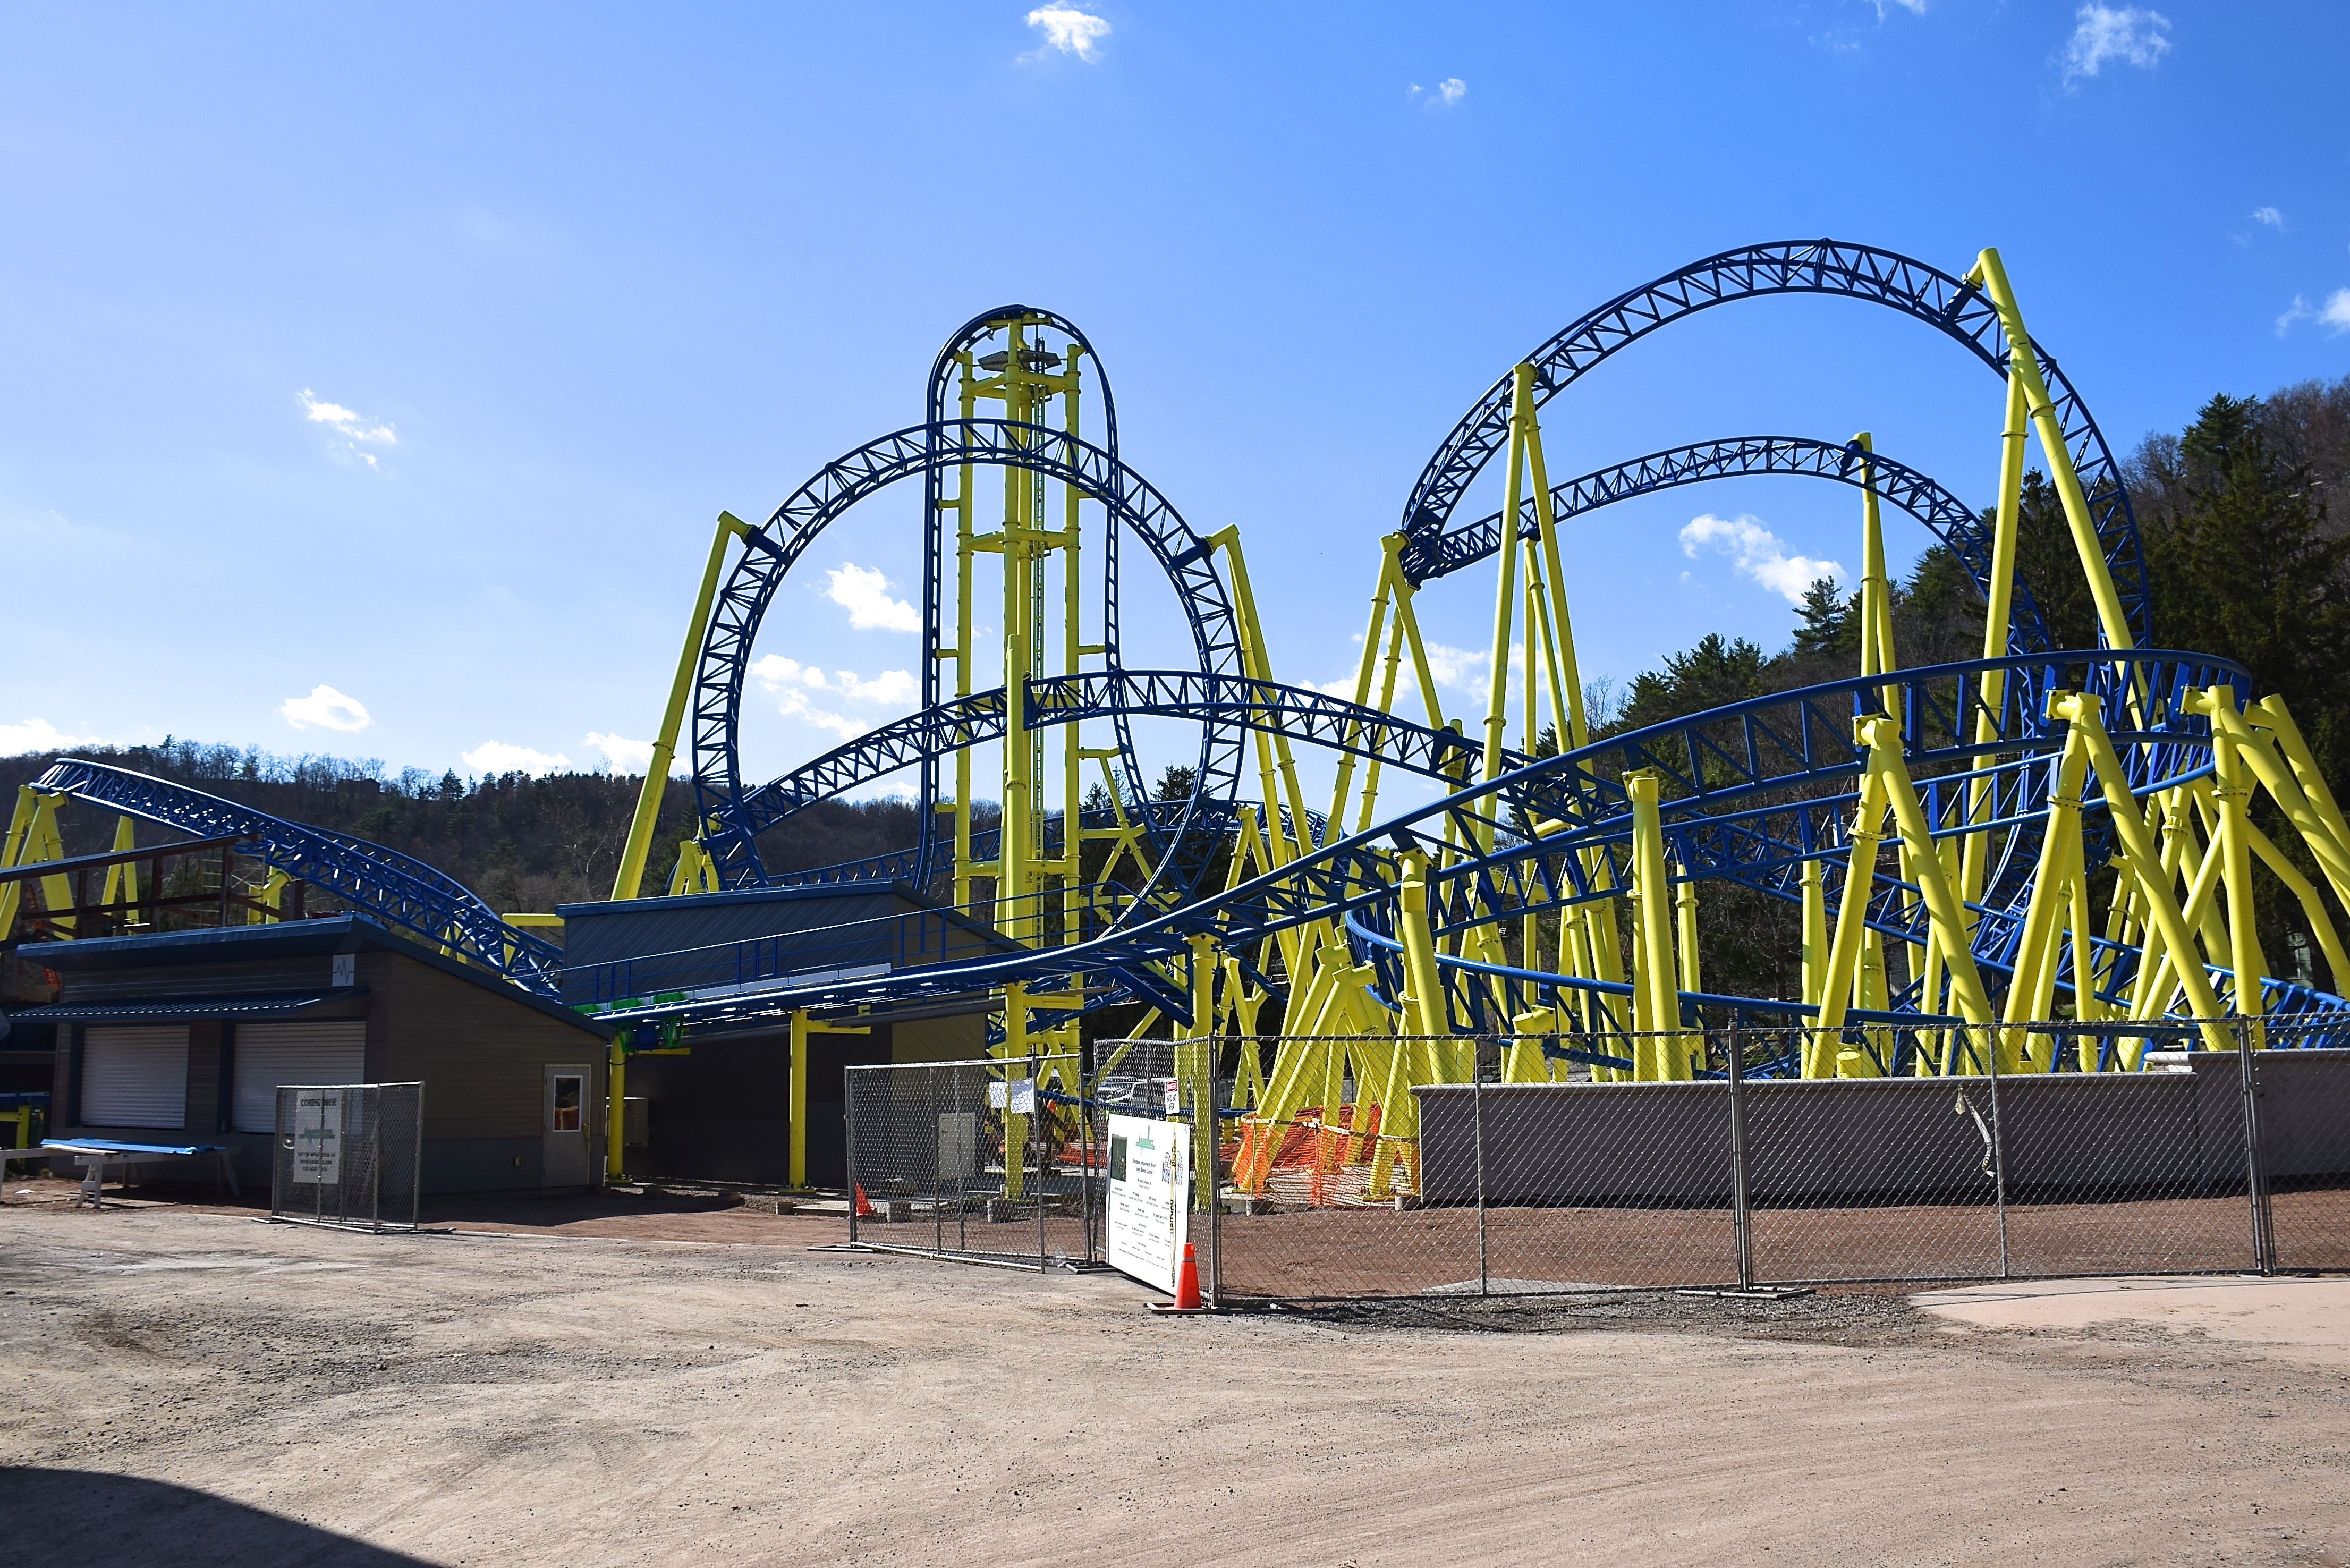 Knoebels puts finishing touches on their newest ride, u0026quot;Impulseu0026quot;